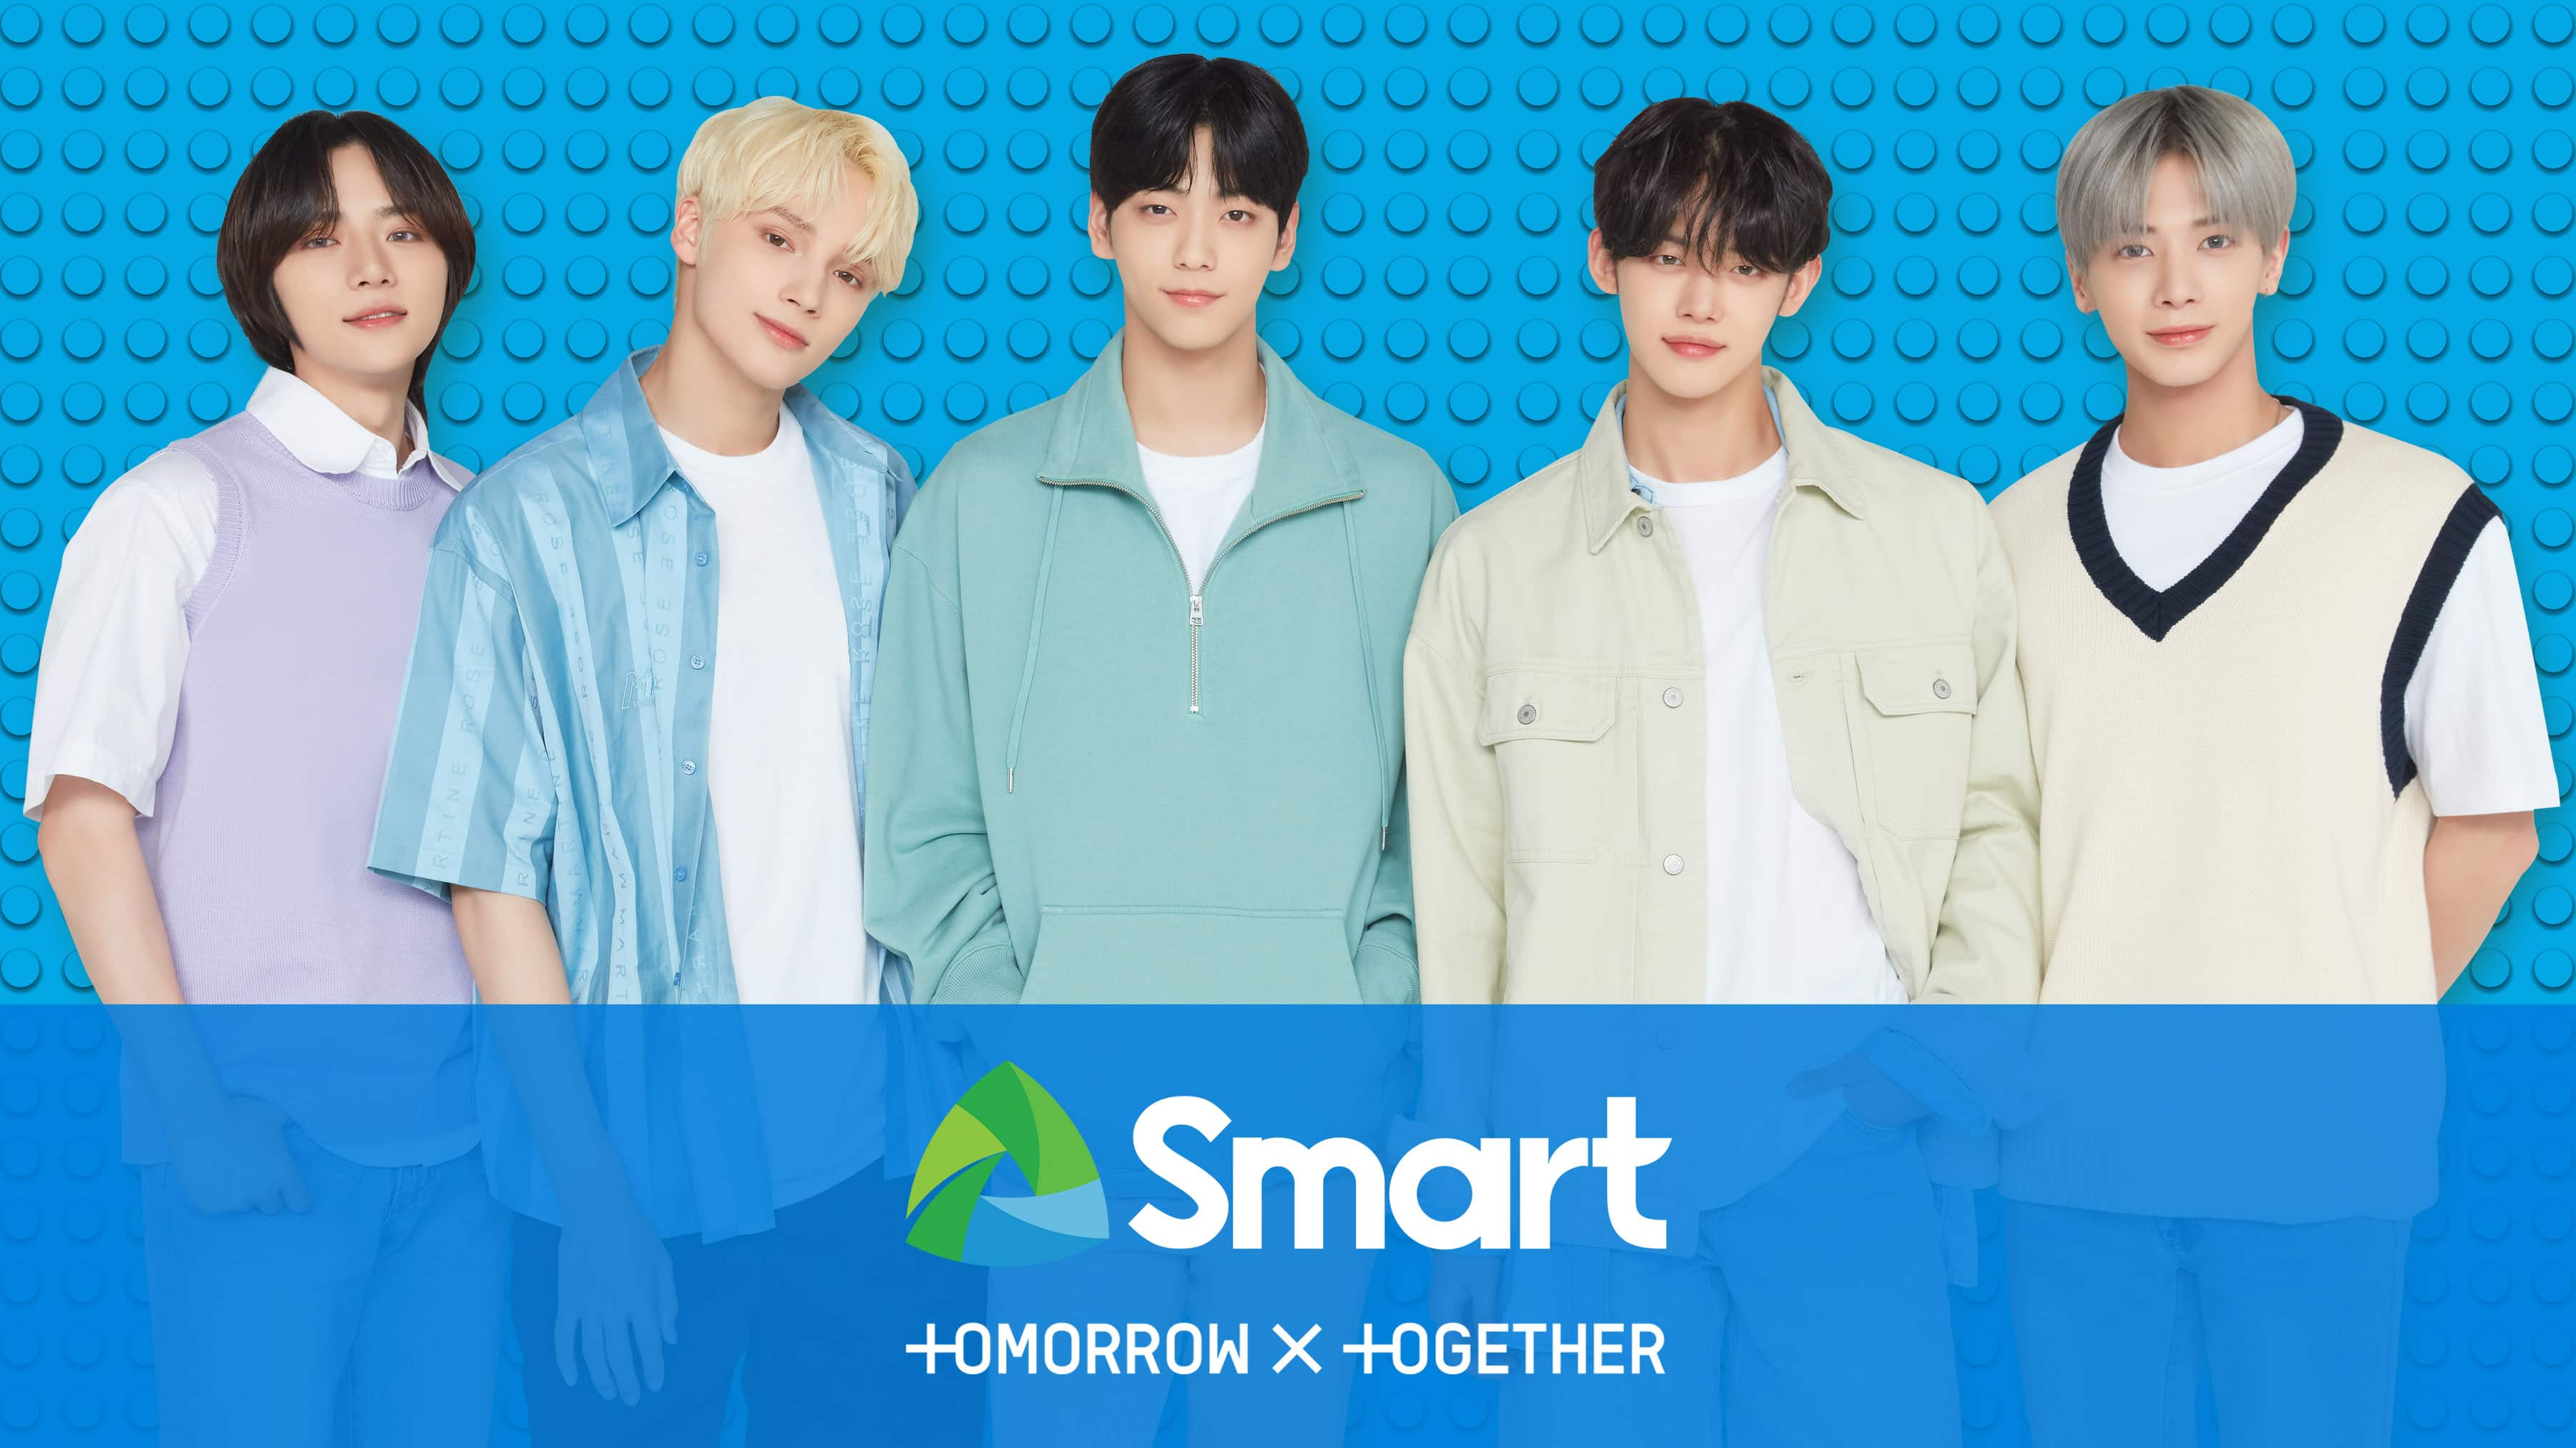 TOMORROW X TOGETHER is Smart's newest endorser